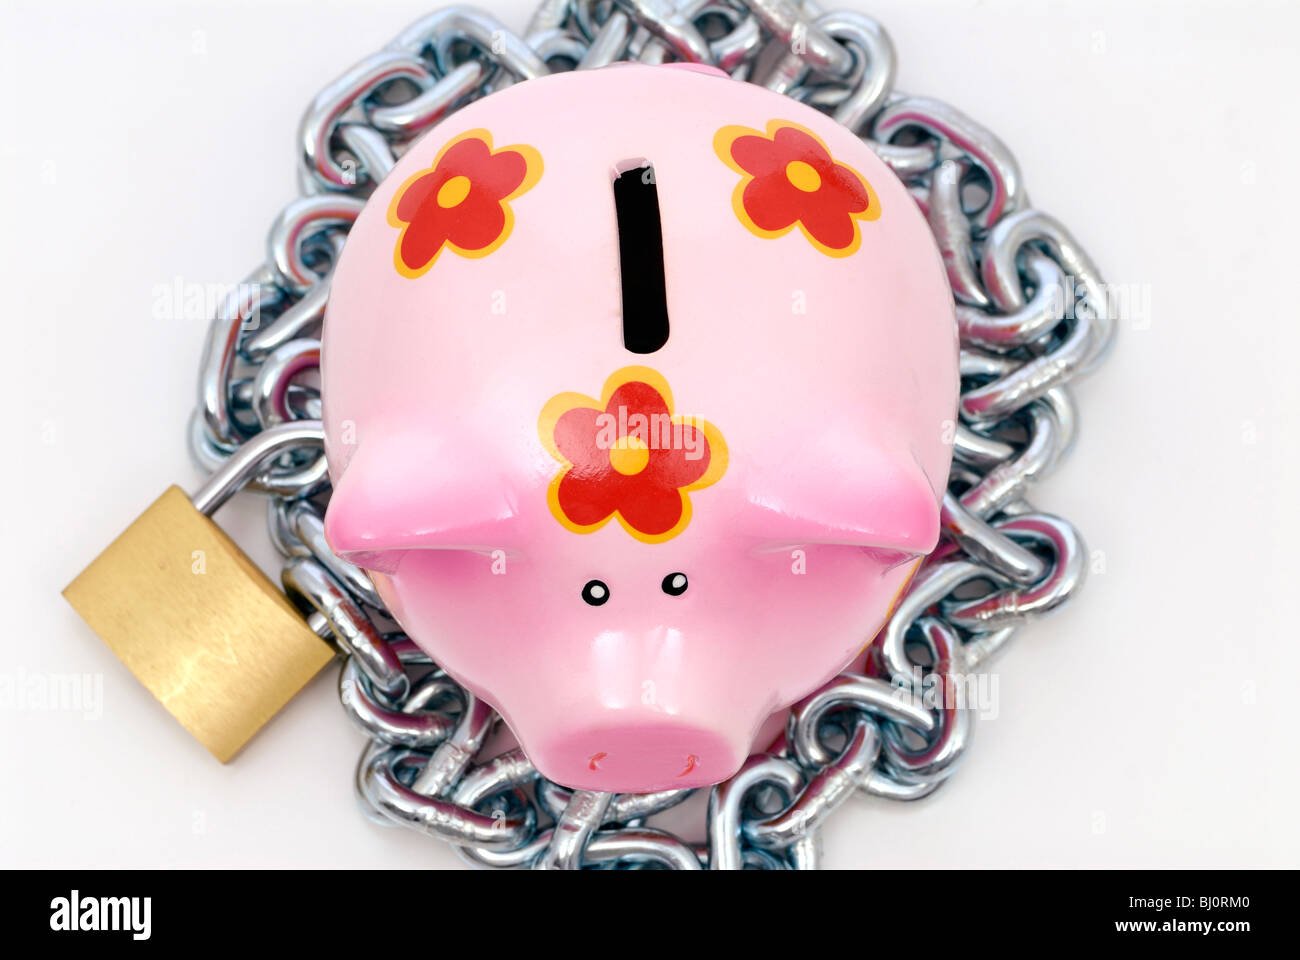 Piggy bank with an iron chain and padlock - Stock Image